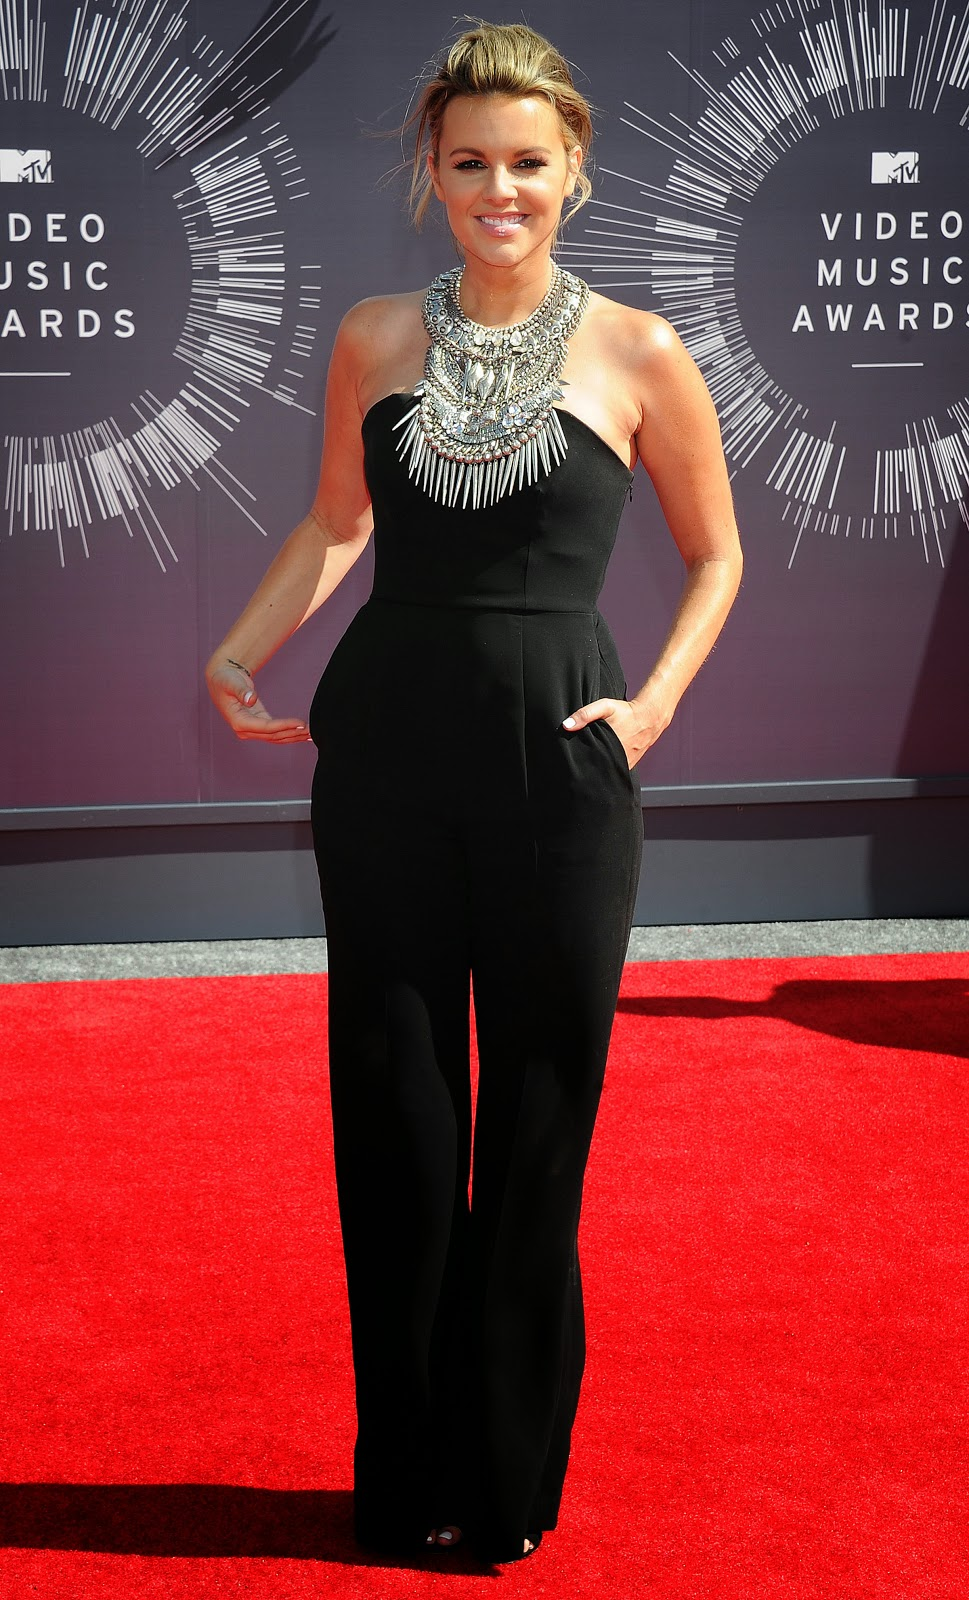 HD Wallpapers - Ali Fedotowsky HD Photos of MTV Video Music Awards Photos and Golden Globe Awards